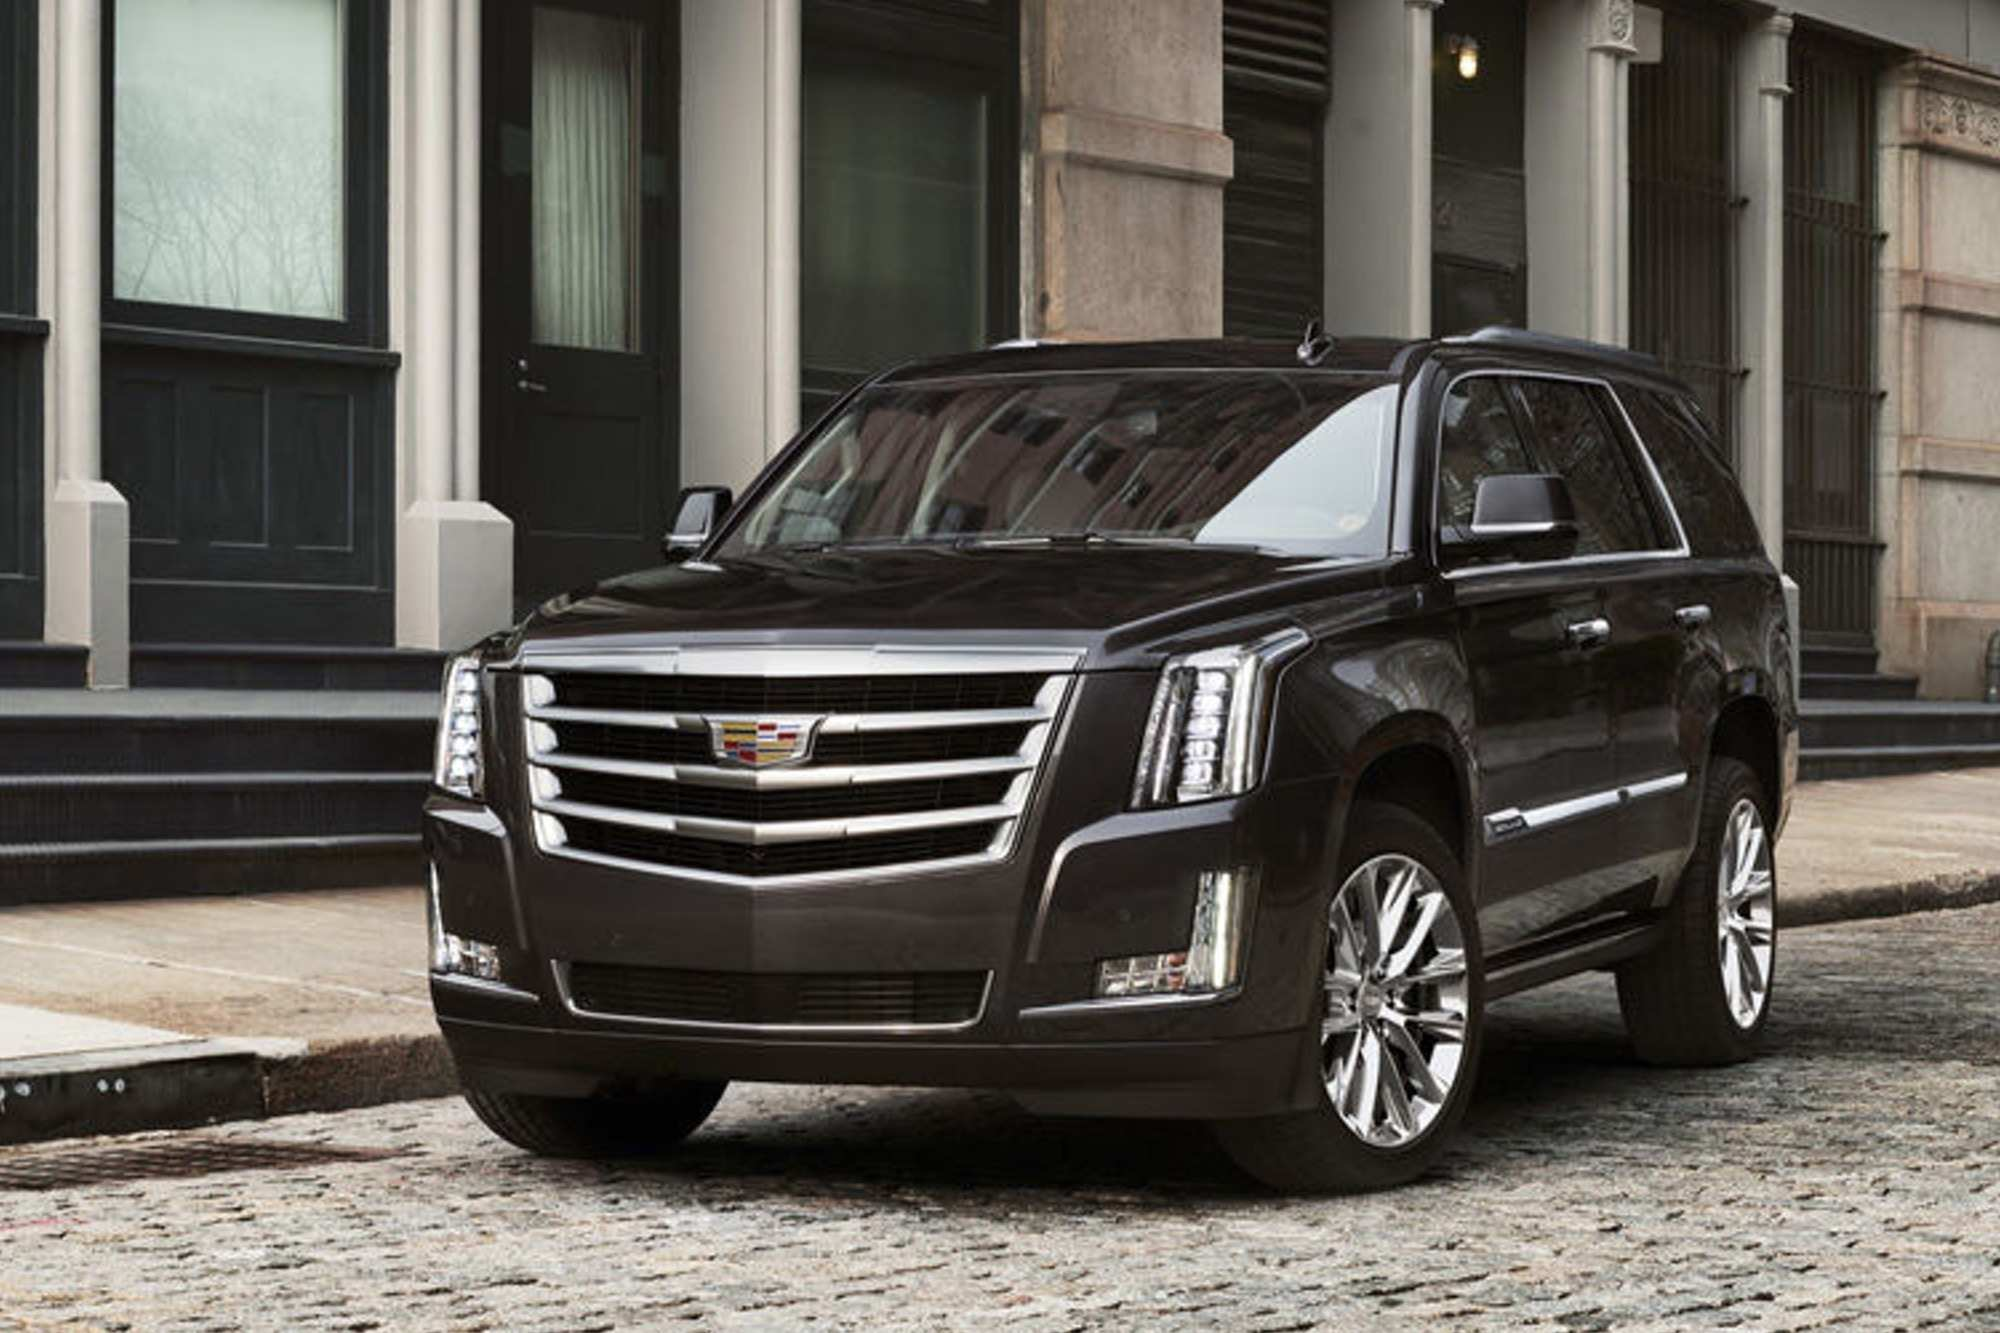 85 Best Review 2020 Cadillac Escalade Body Style Change Exterior for 2020 Cadillac Escalade Body Style Change